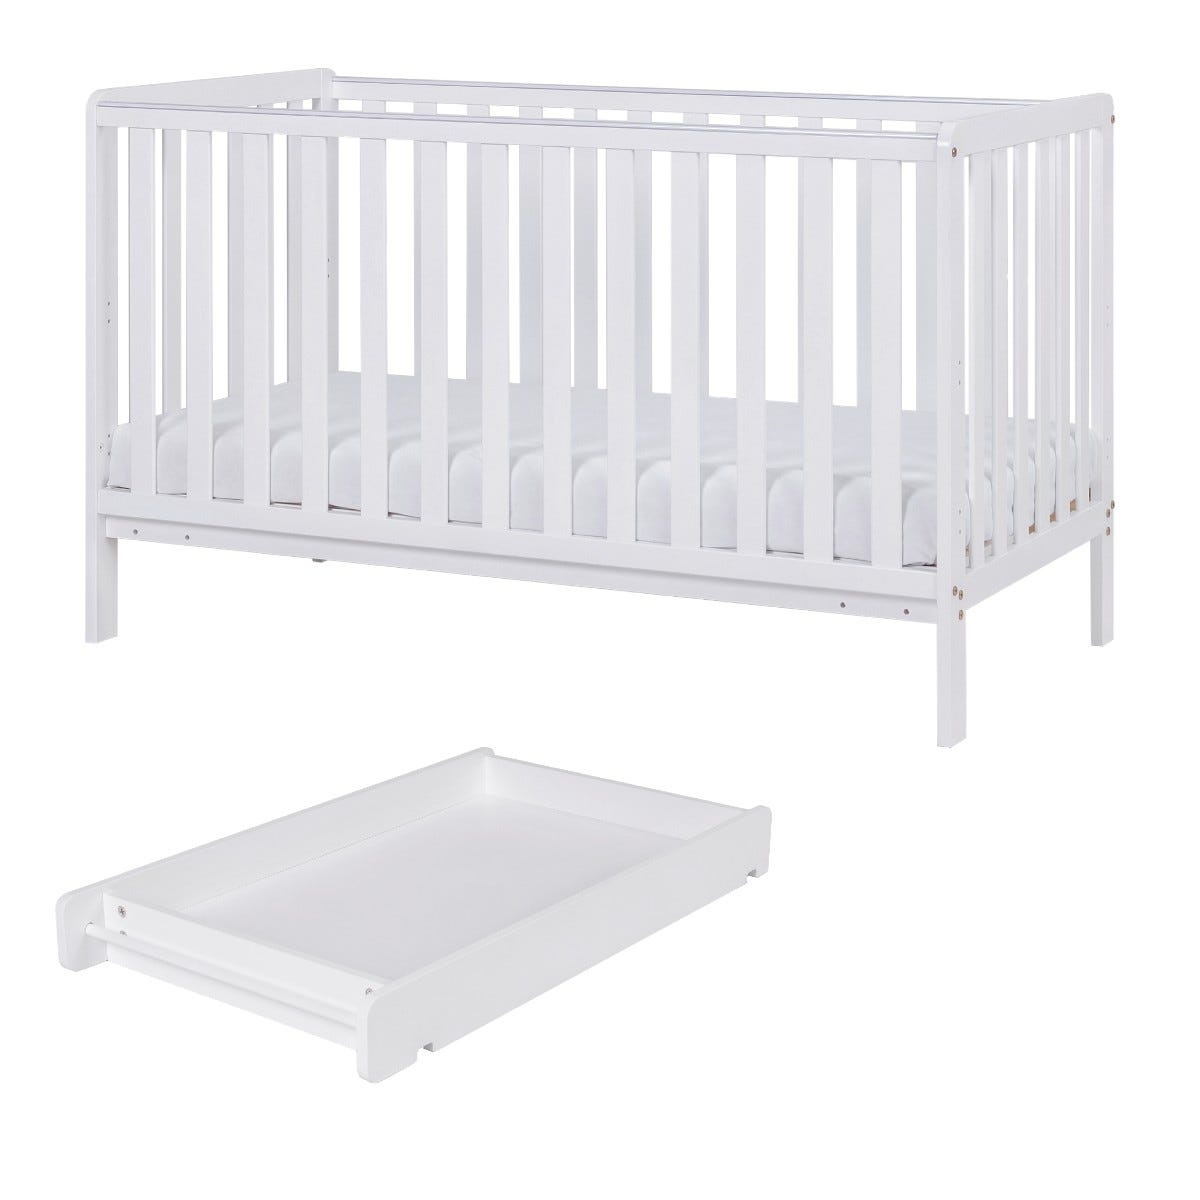 Tutti Bambini Malmo Cot Bed with Cot Top Changer & Mattress White